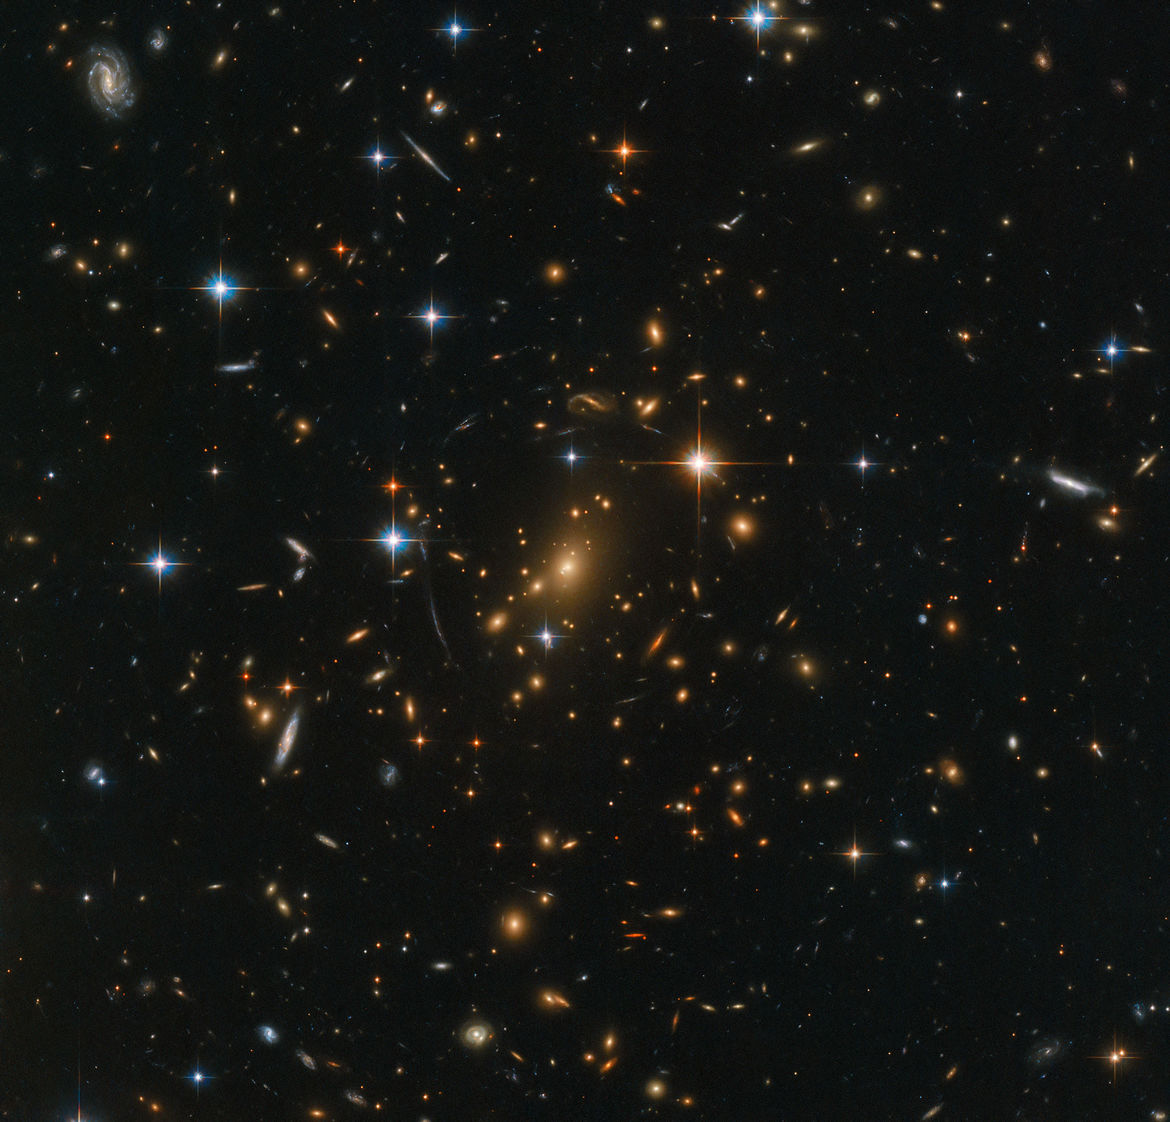 The gigantic galaxy cluster RXC J0142.9+4438 contains several hundred galaxies, and was observed by Hubble to study even more distant background galaxies whose light was amplified by the gravity of the cluster. Credit: ESA/Hubble & NASA, RELICS